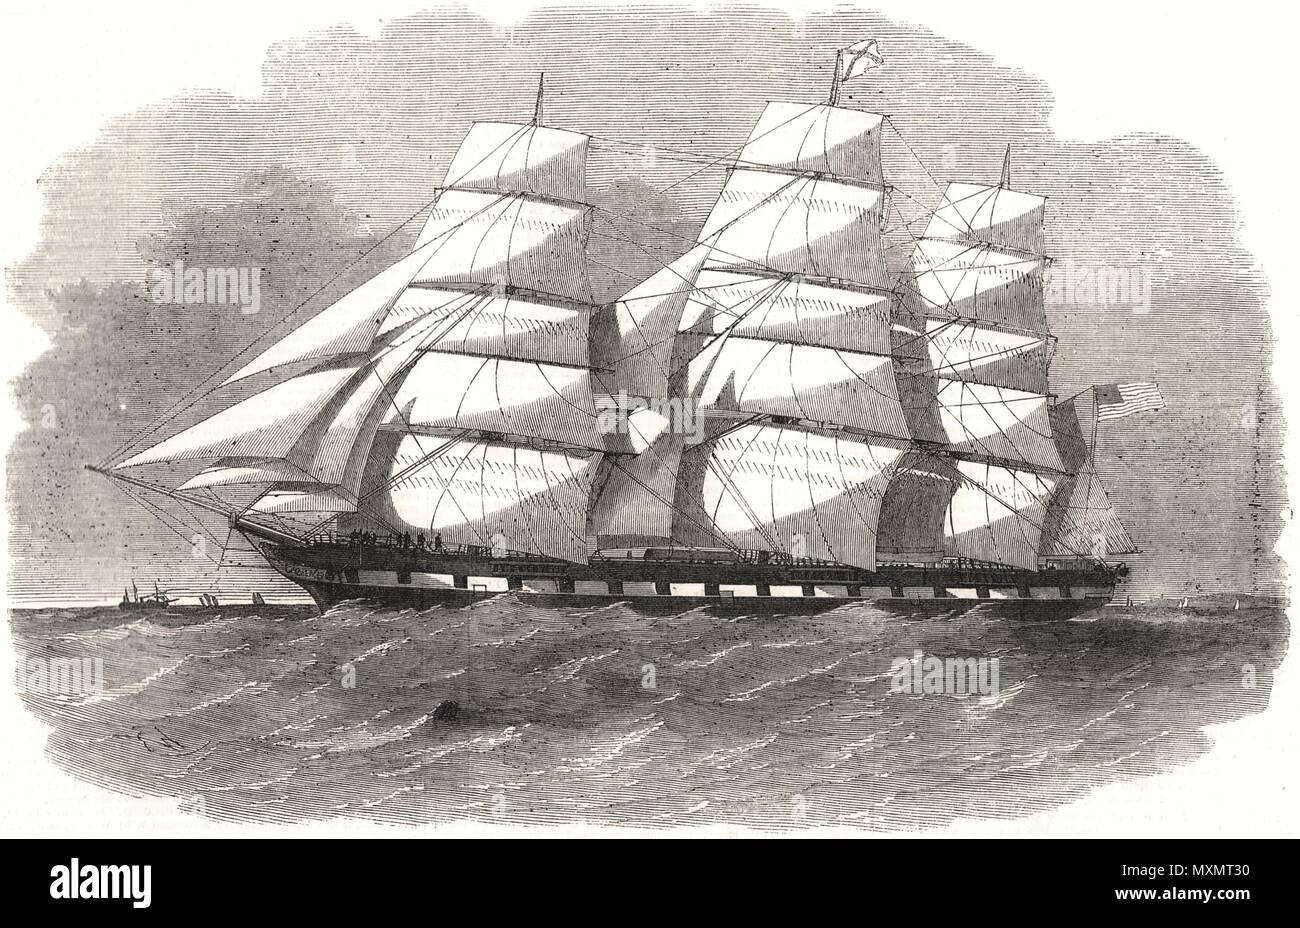 The new ship ' City of Mobile '. Ships 1856. The Illustrated London News - Stock Image